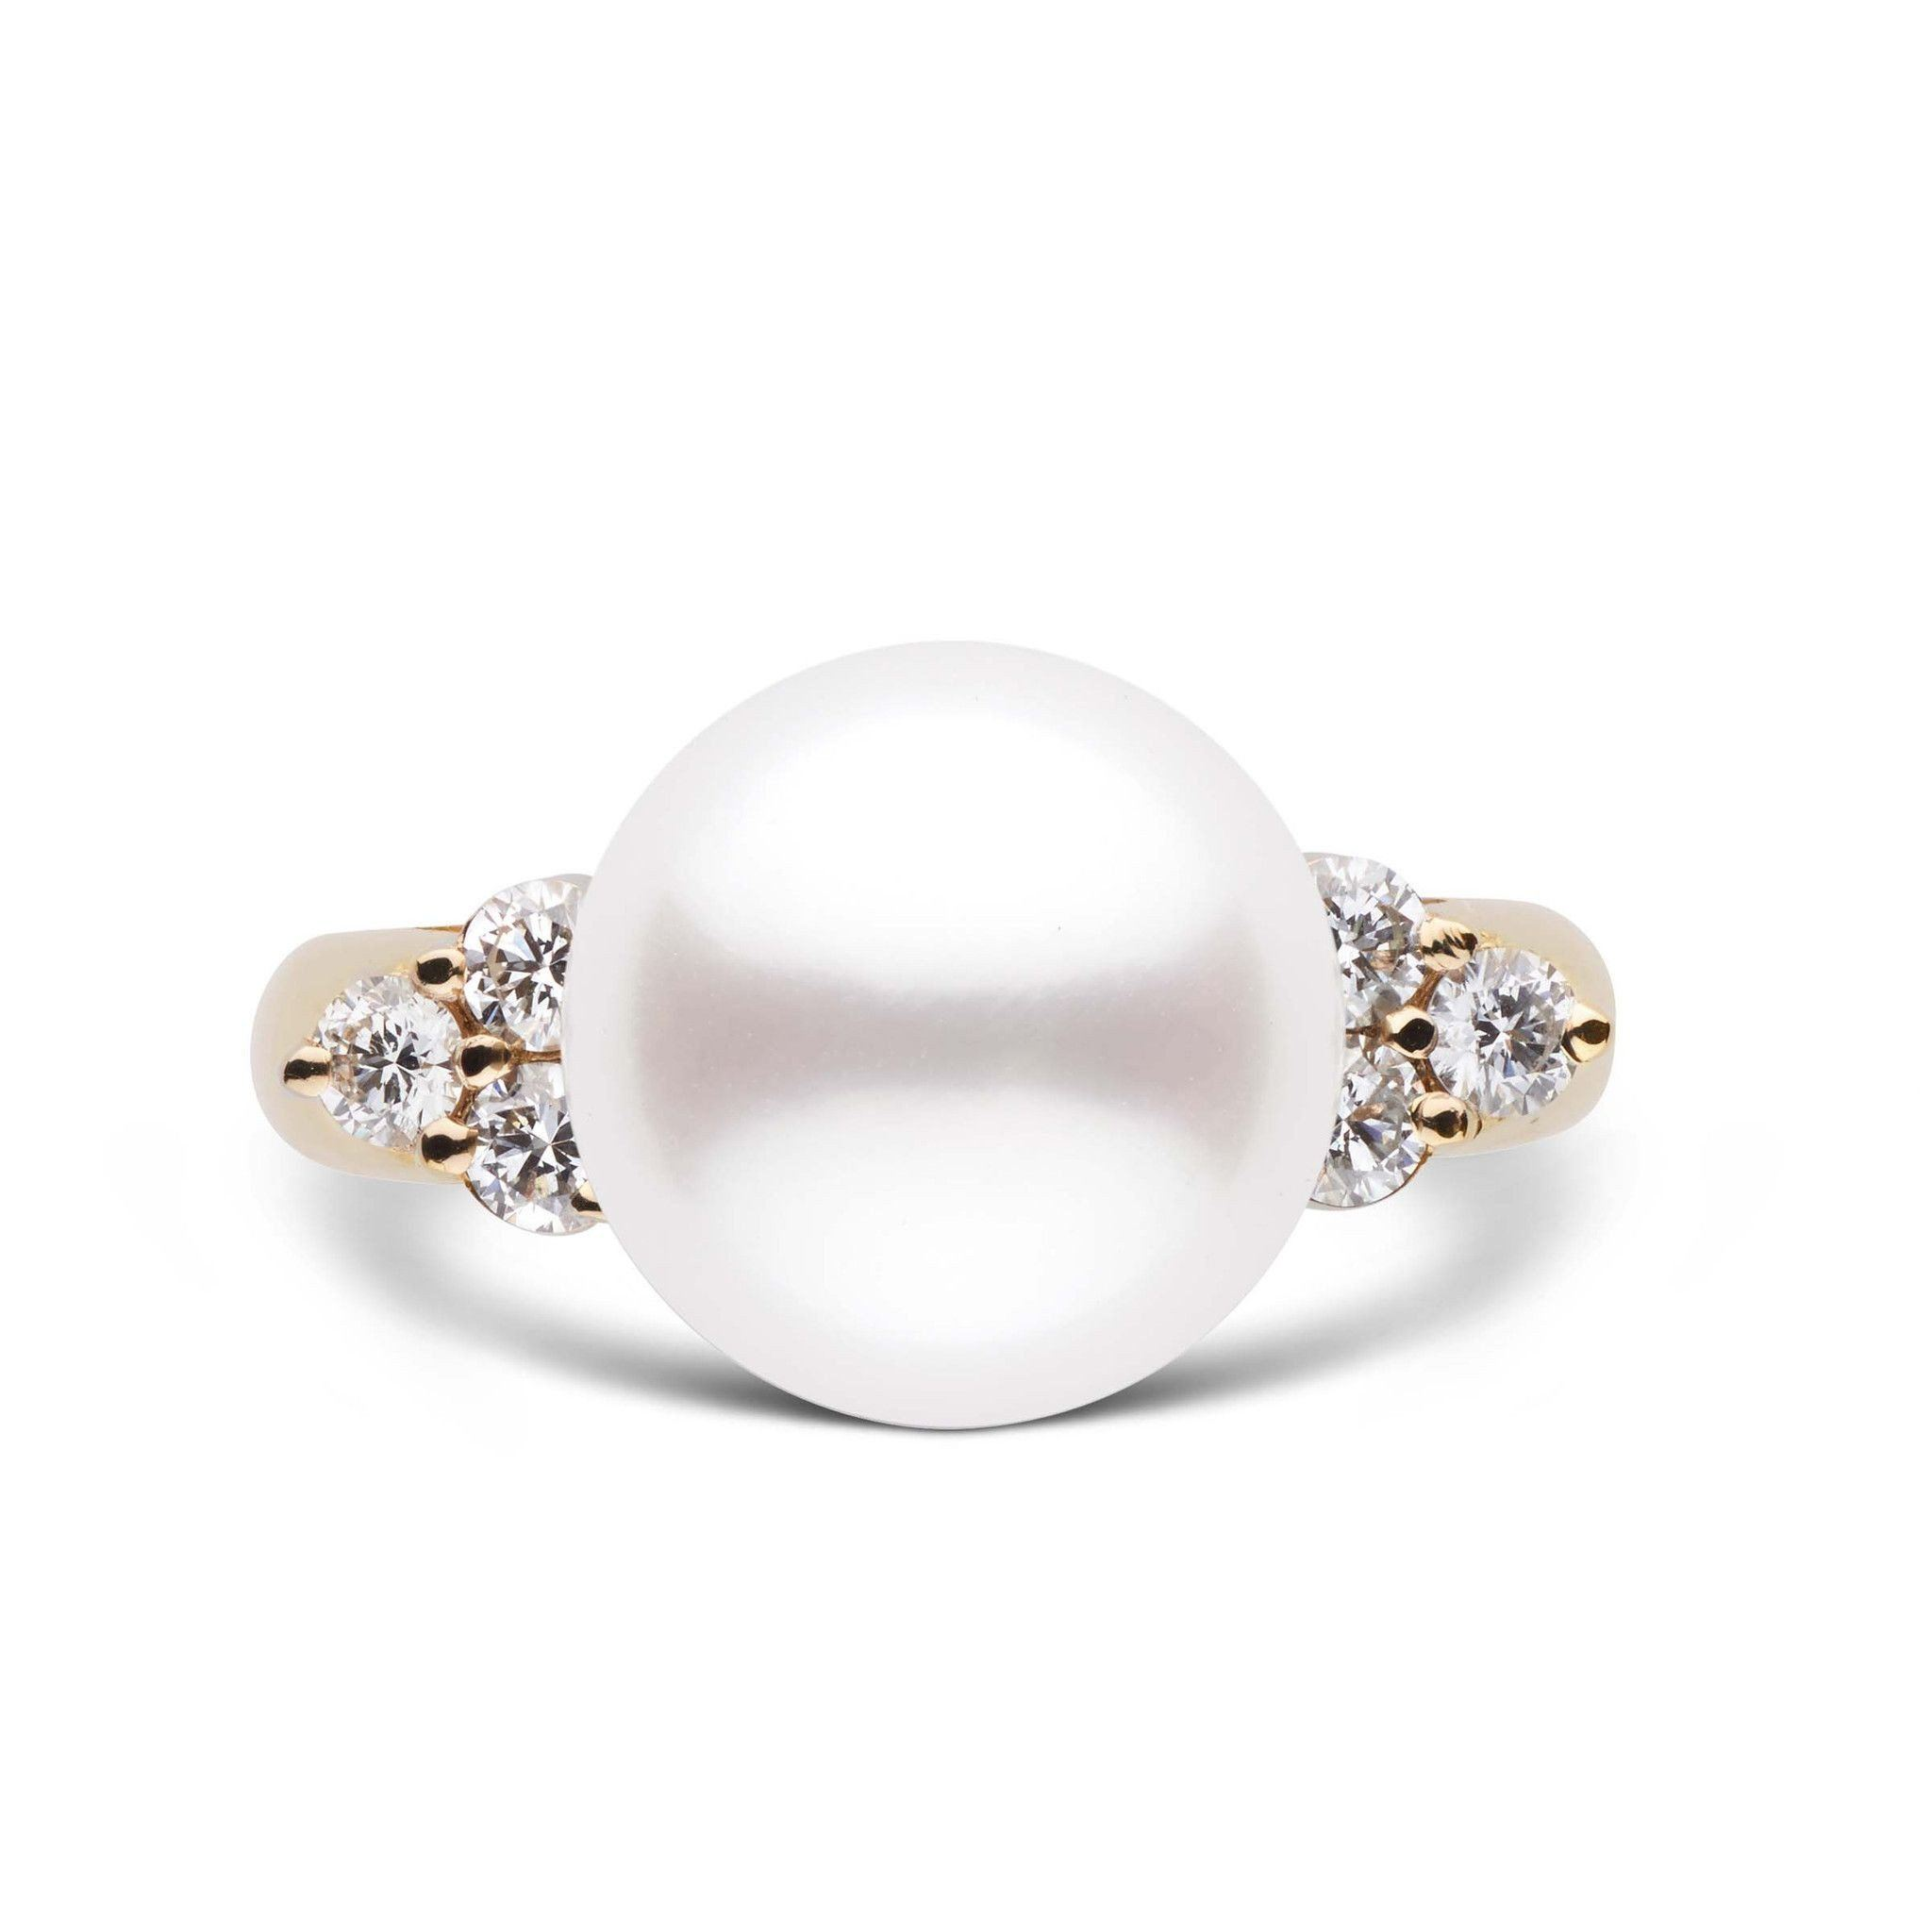 Always Collection White 11.0-12.0 mm South Sea Pearl Ring